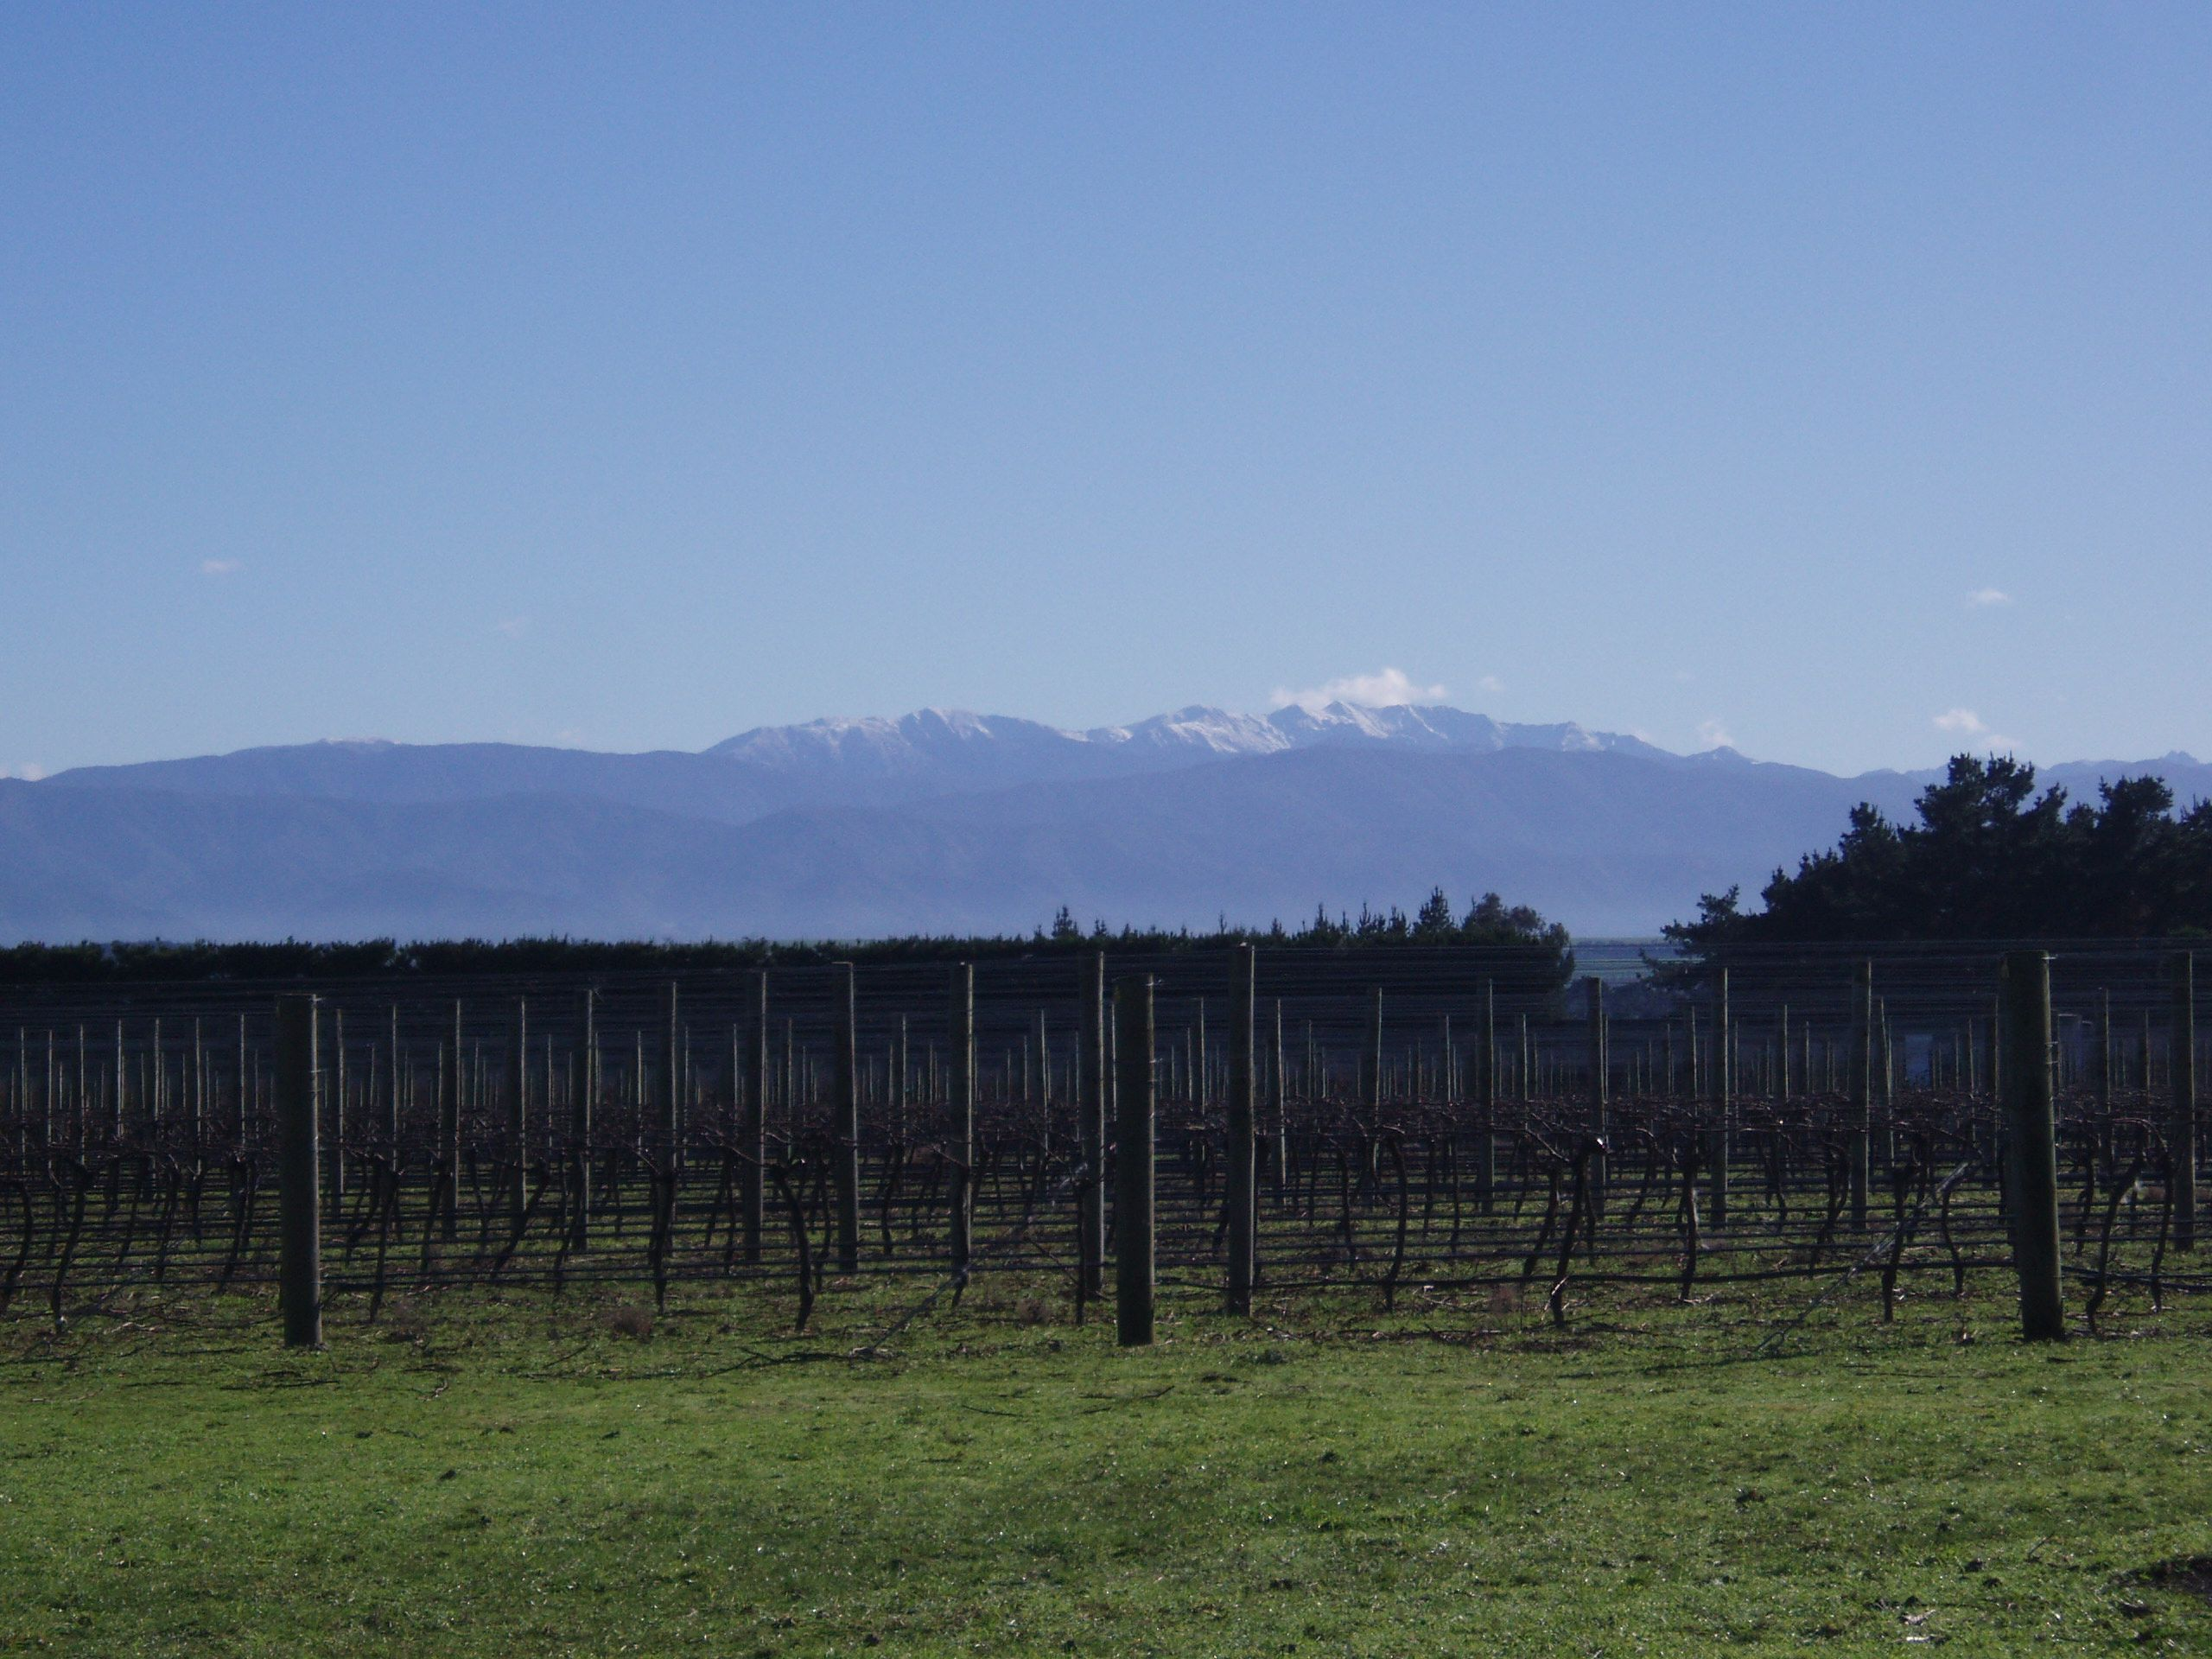 Winter at Stonecrop Vineyard